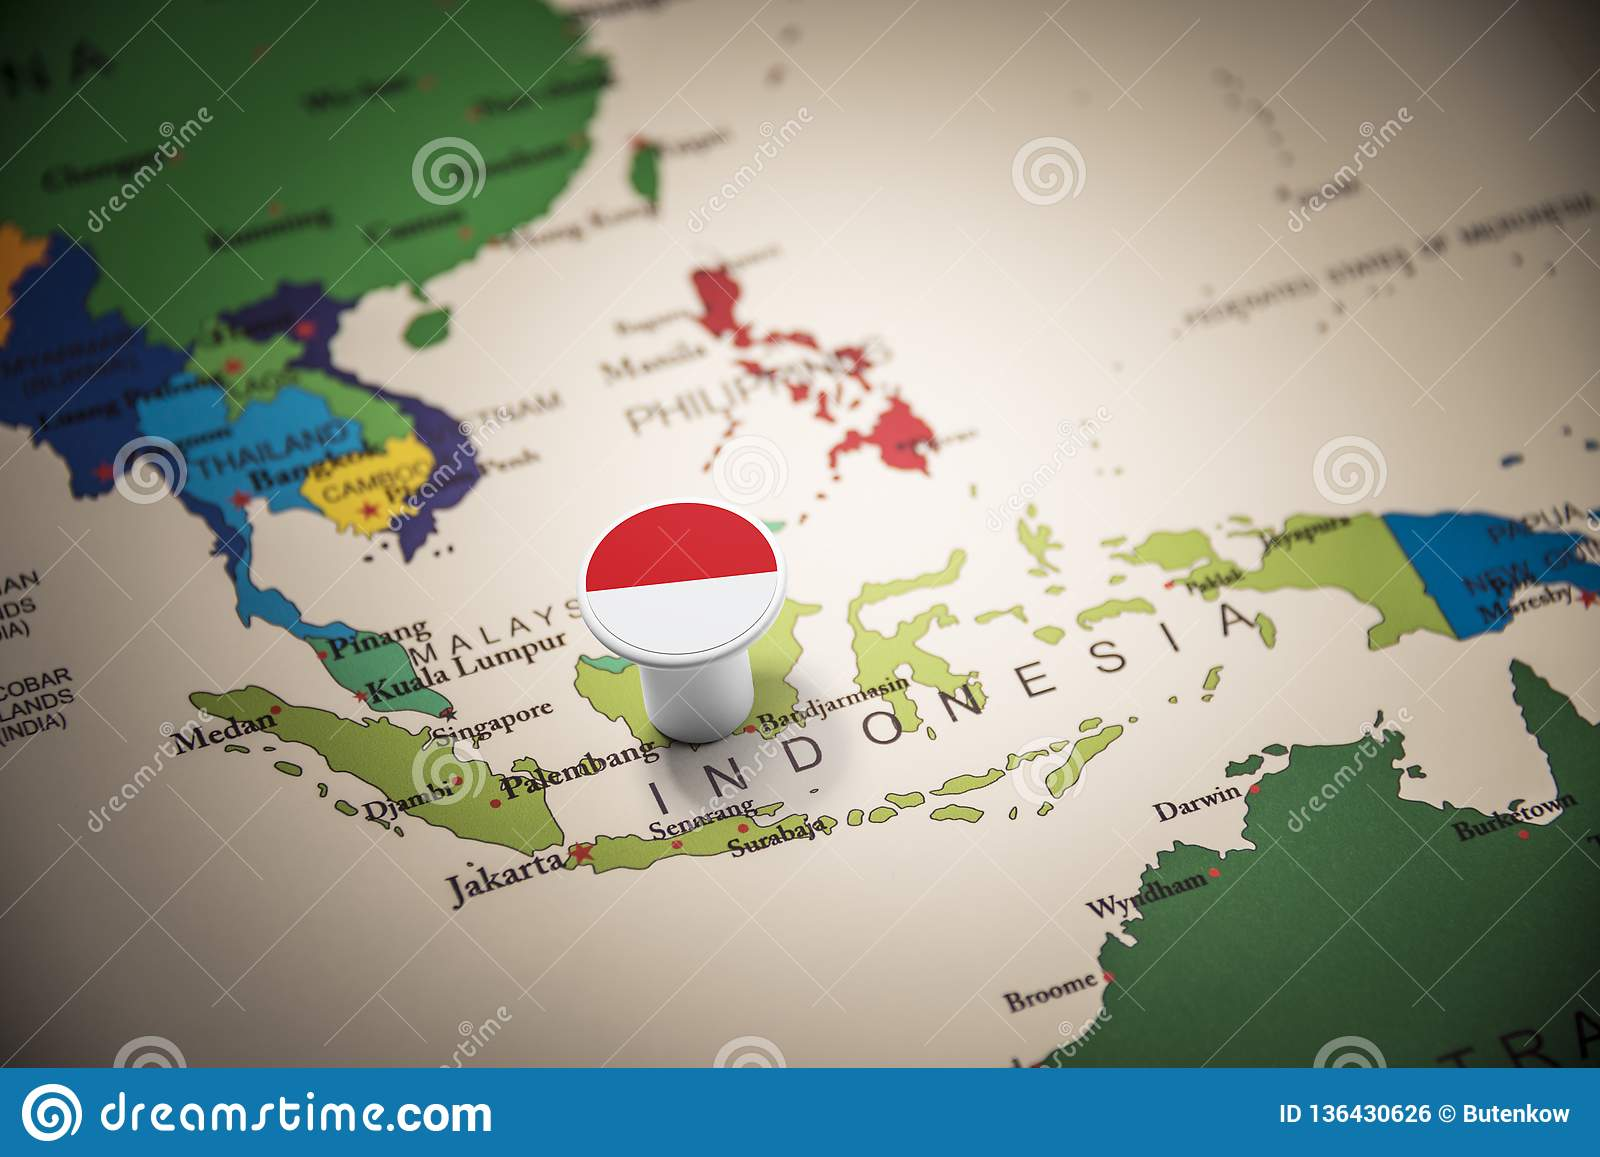 Indonesia marked with a flag on the map